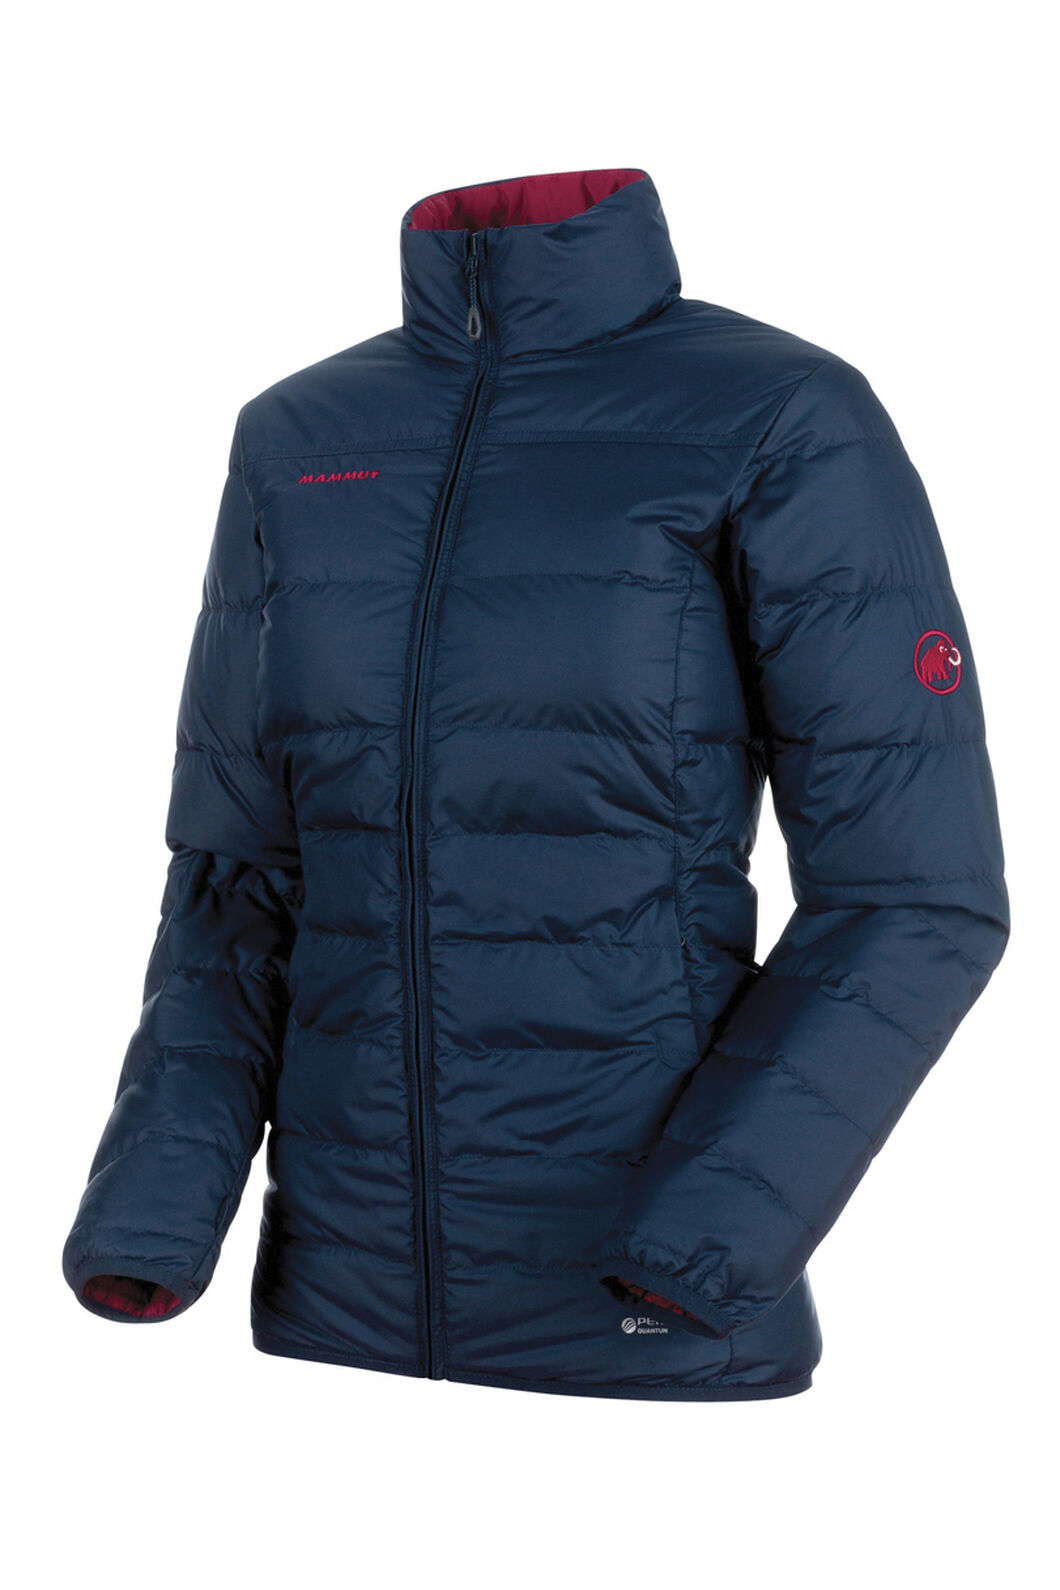 Mammut Whitehorn Down Jacket - Women's, Marine, hi-res